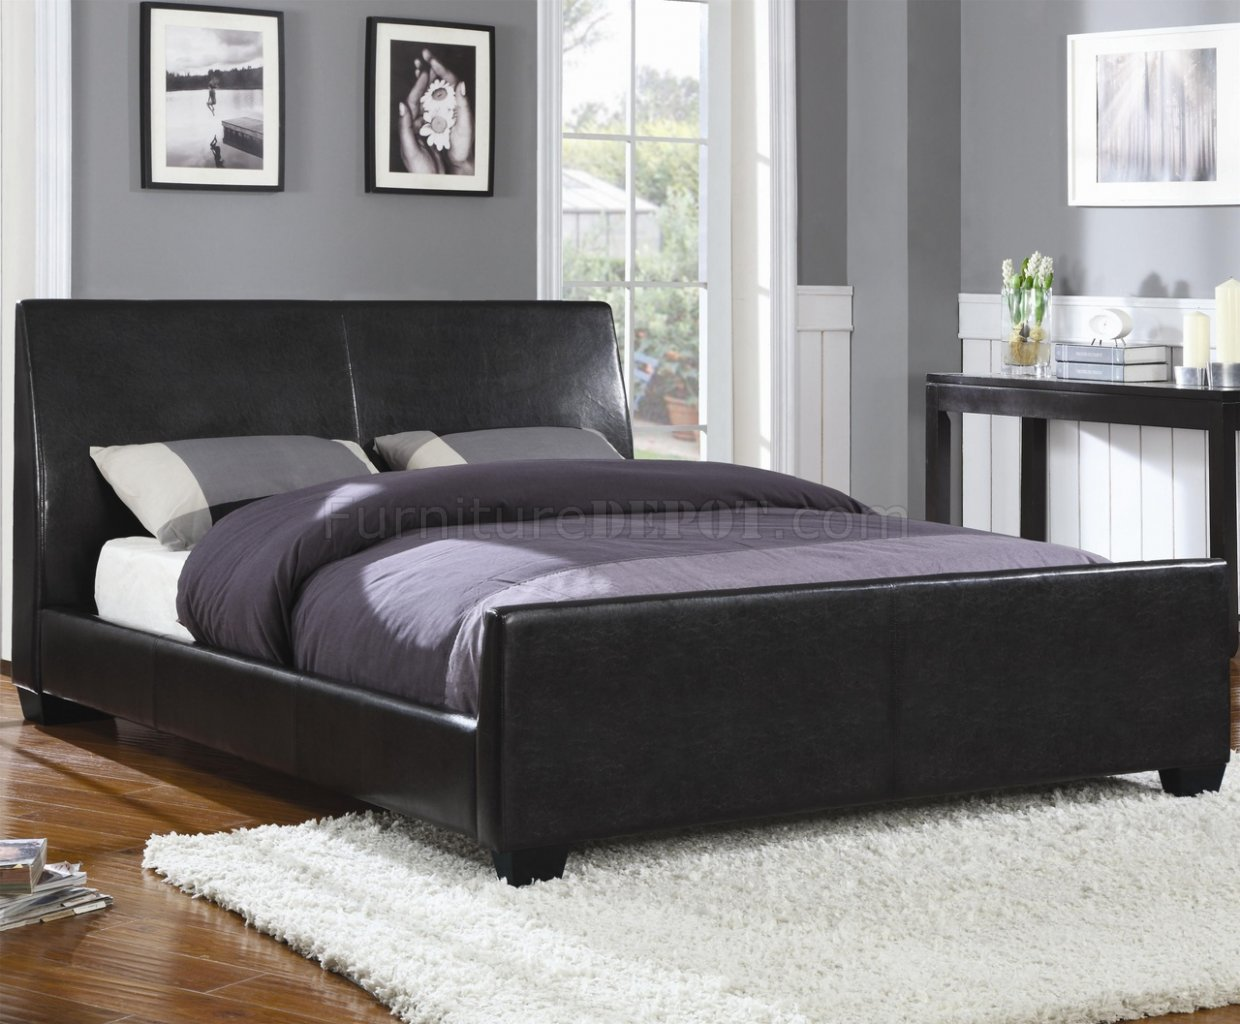 300250Q Upholstered Bed In Black Faux Leather By Coaster